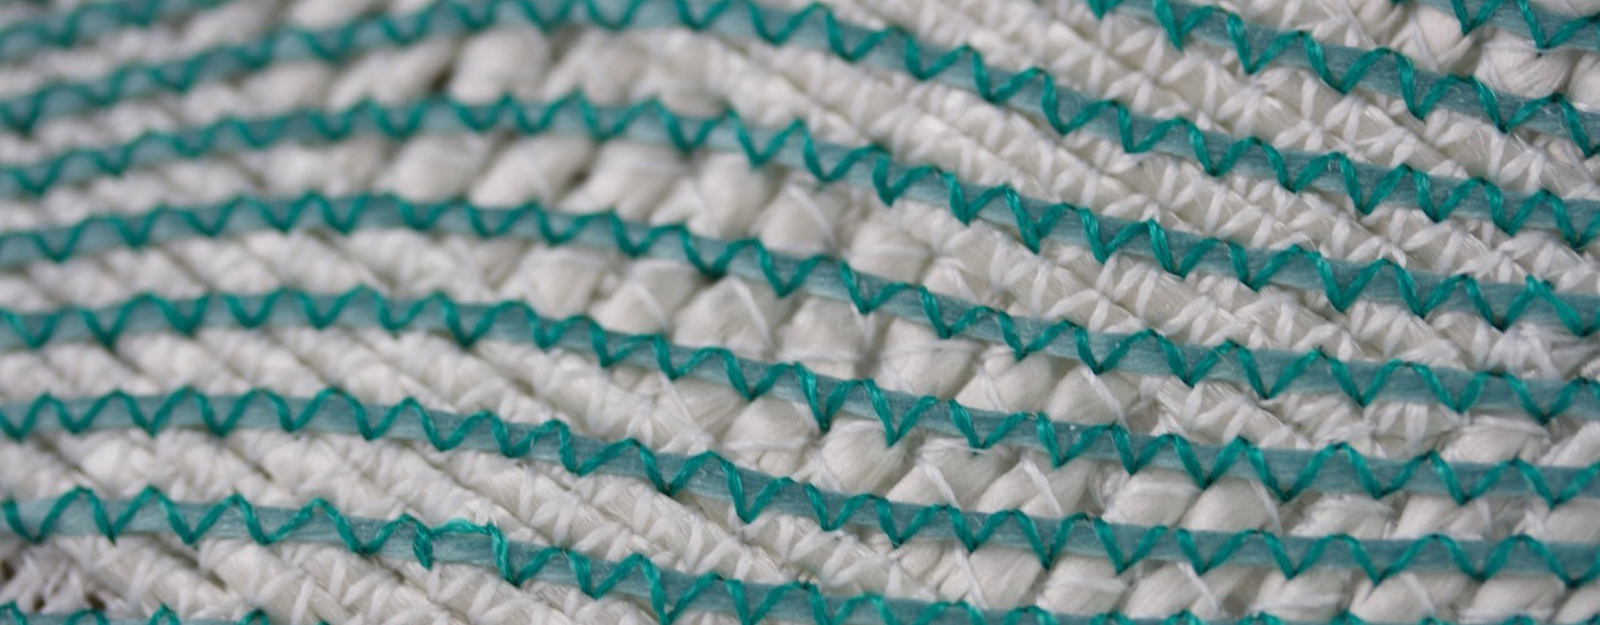 cdd87251eb3 How to Make Sneakers Out of Trash  Designing the Adidas x Parley Ocean Shoe